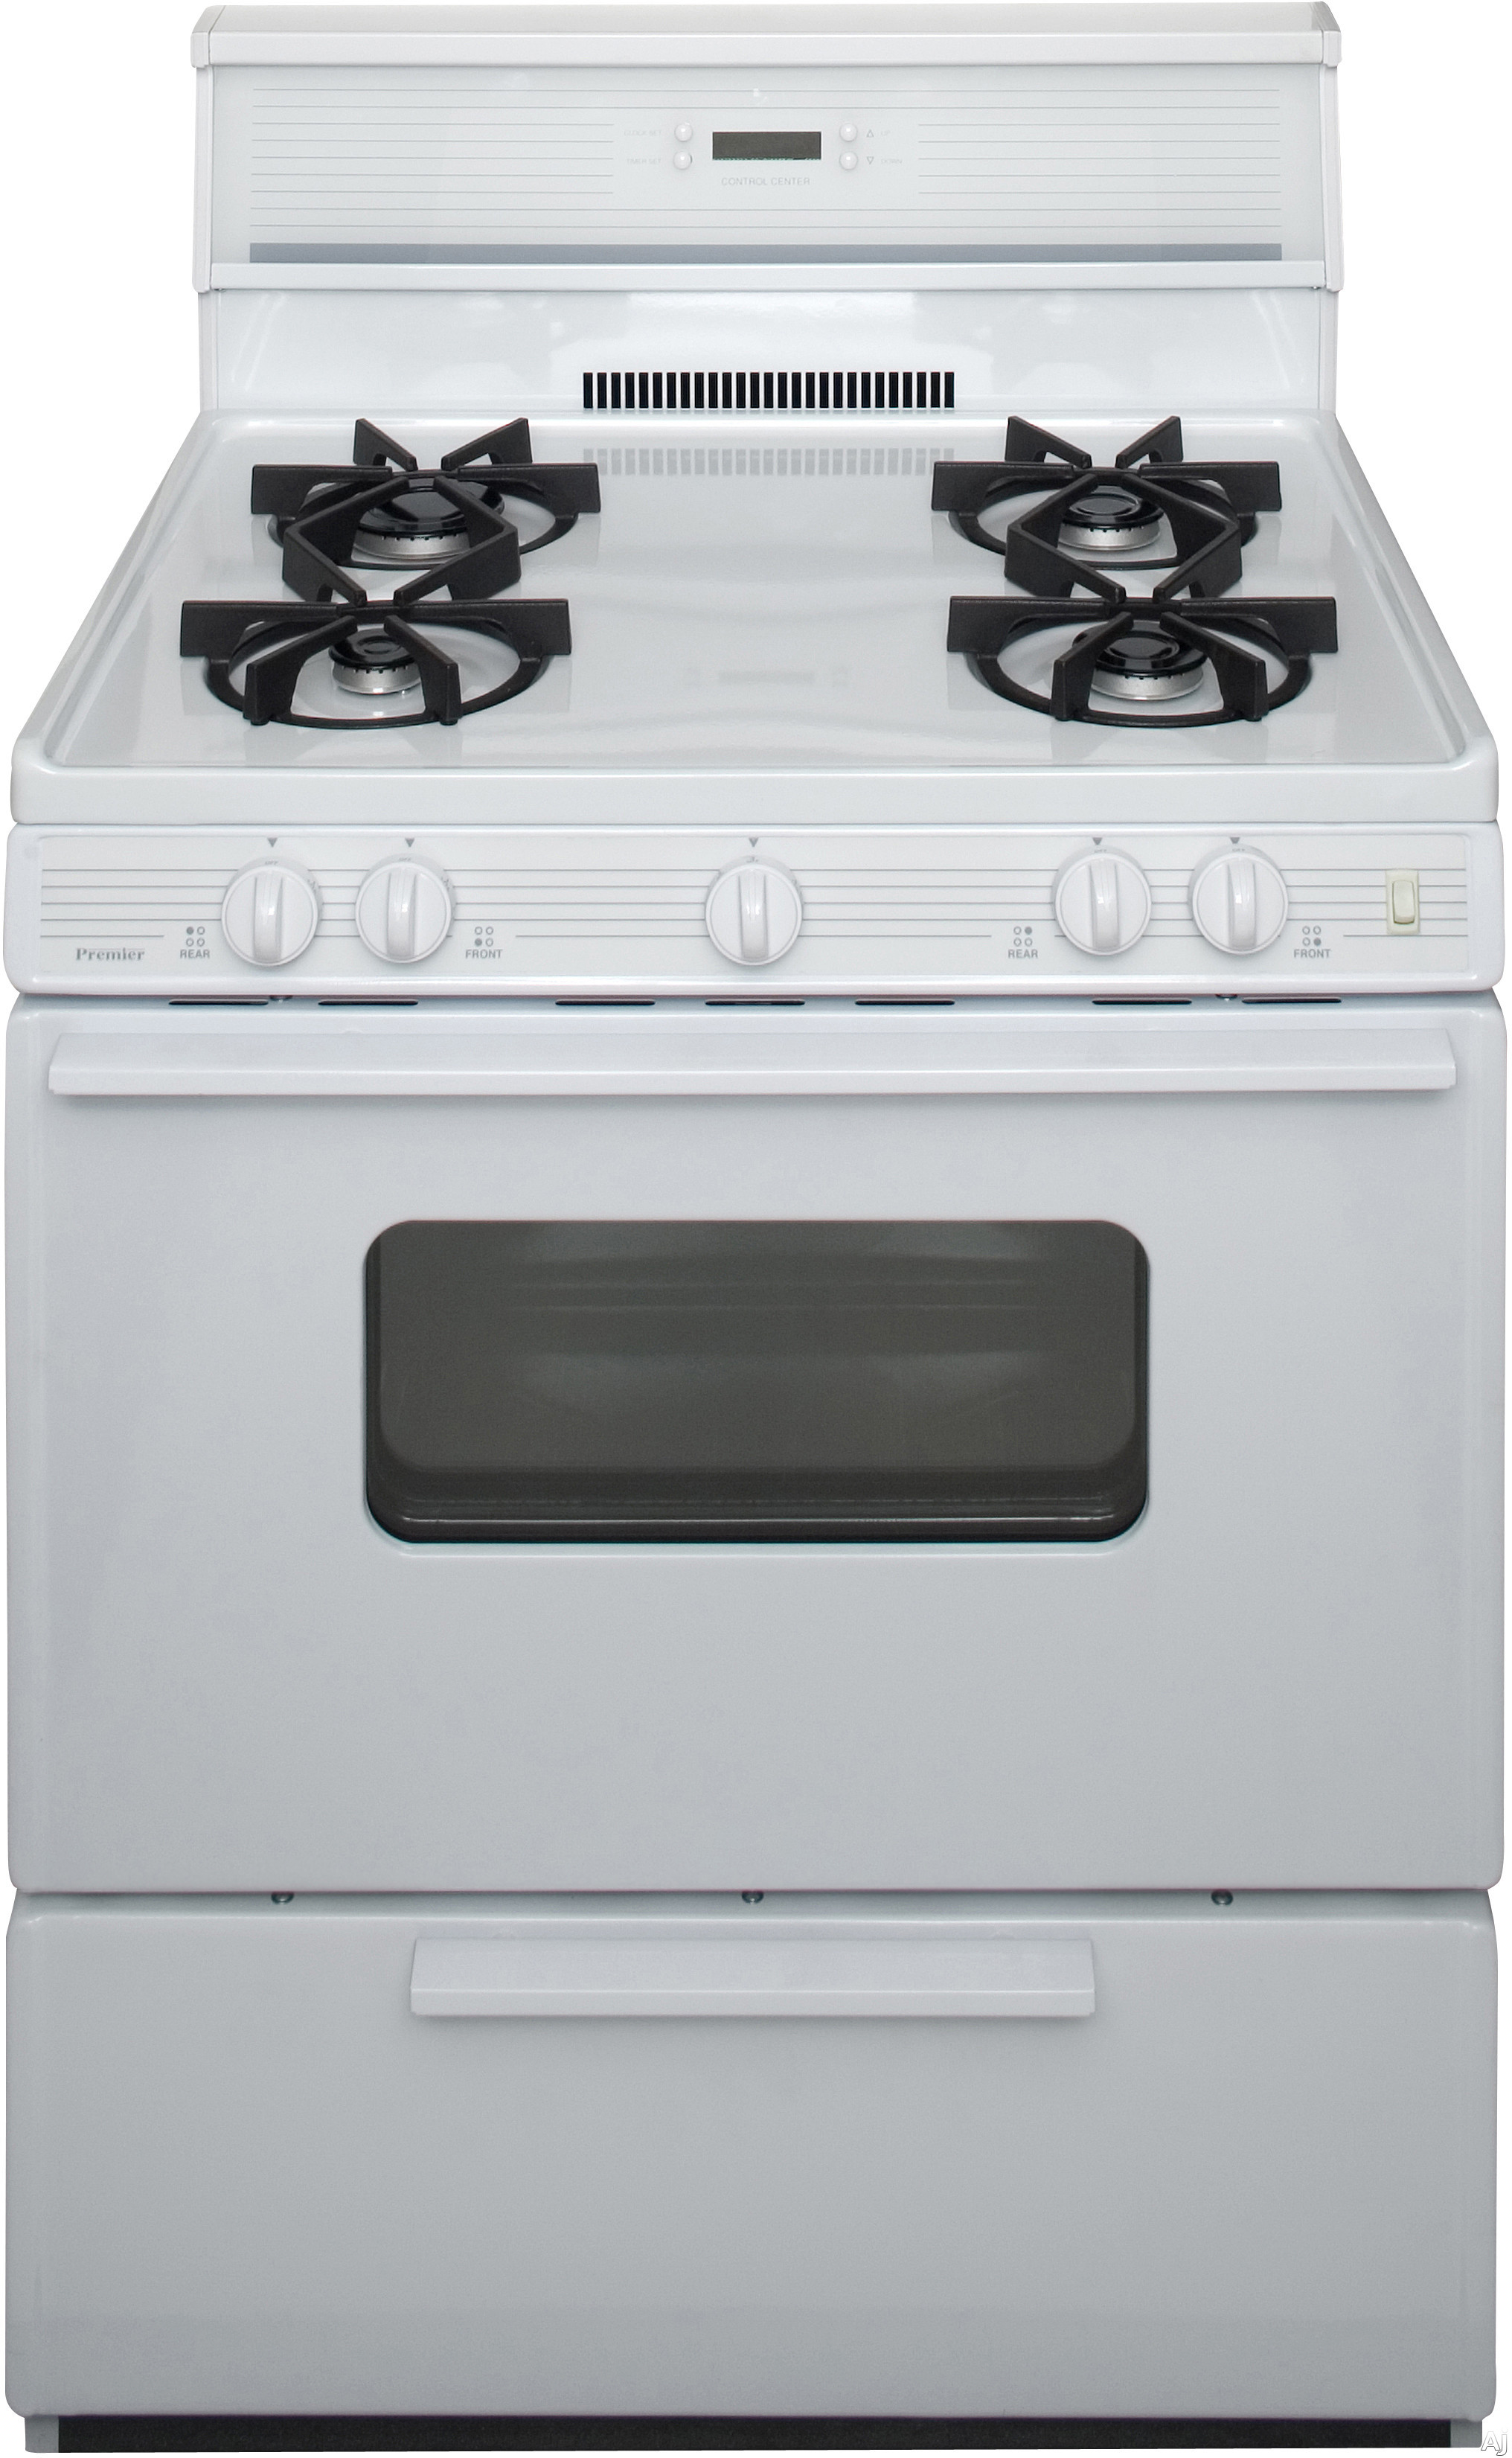 Premier SMK240OP 30 Inch Freestanding Gas Range with 4 Sealed Burners, Electronic Ignition, 17,000 BTU Oven Burner, Electronic Clock/Timer, Interior Oven Light, ADA Compliant and 10 Inch Glass Tempere